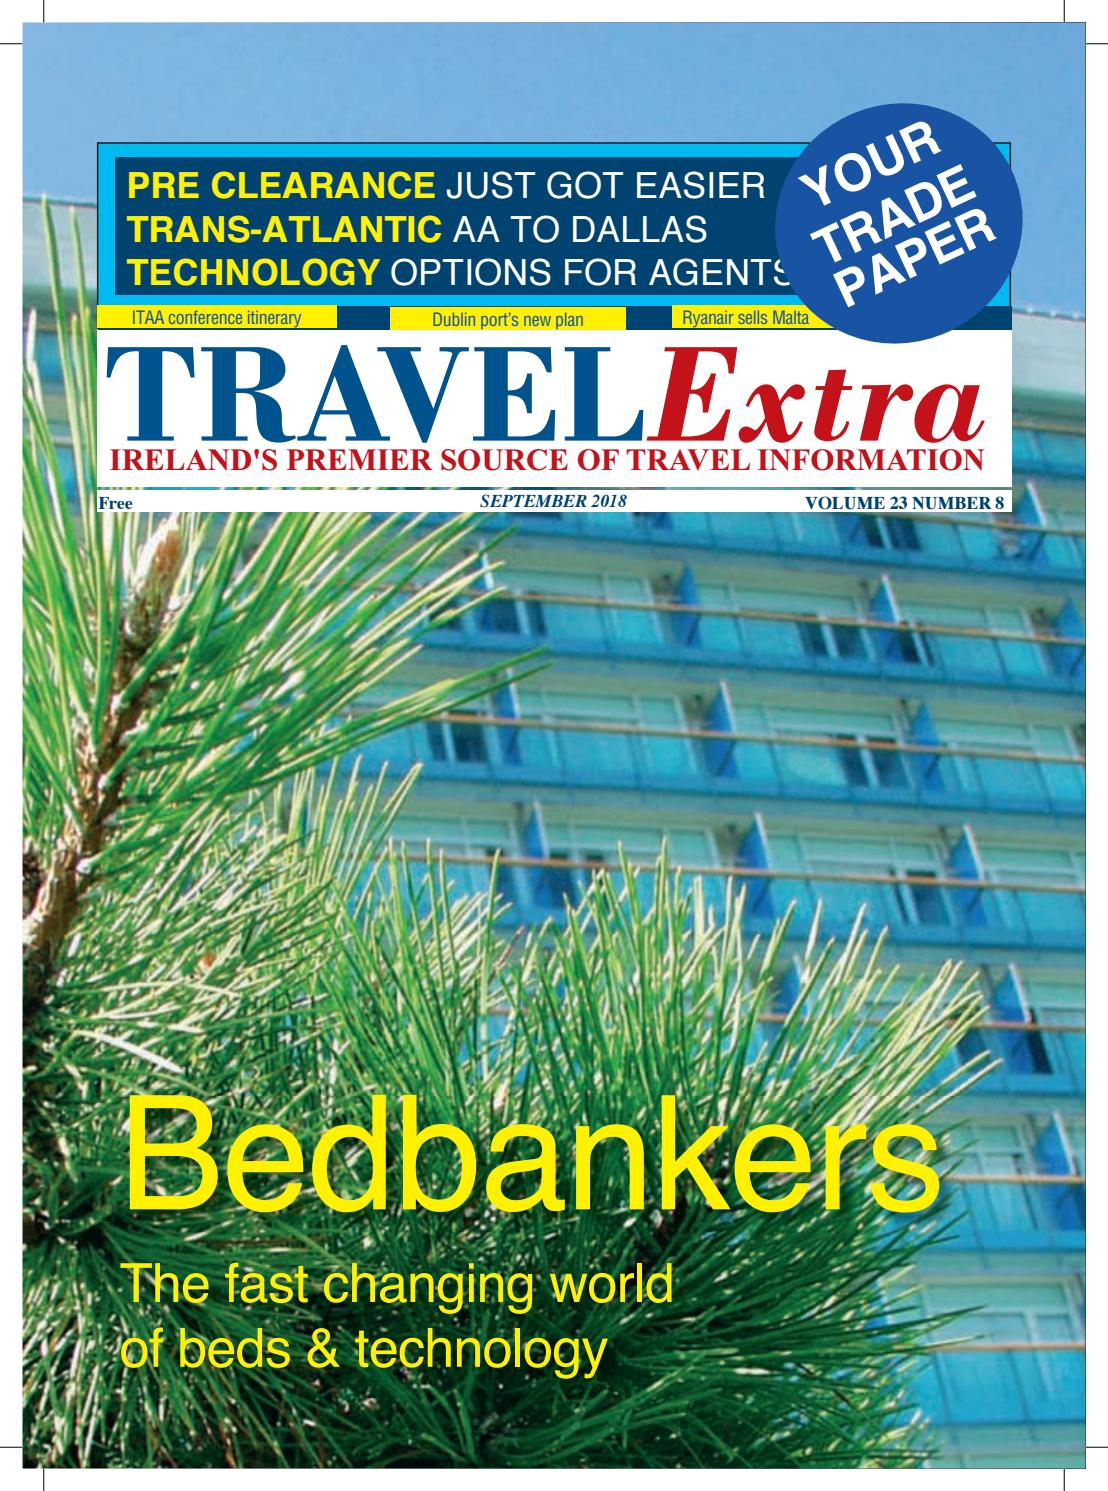 Travel Extra October 2018 by Travel Extra - issuu